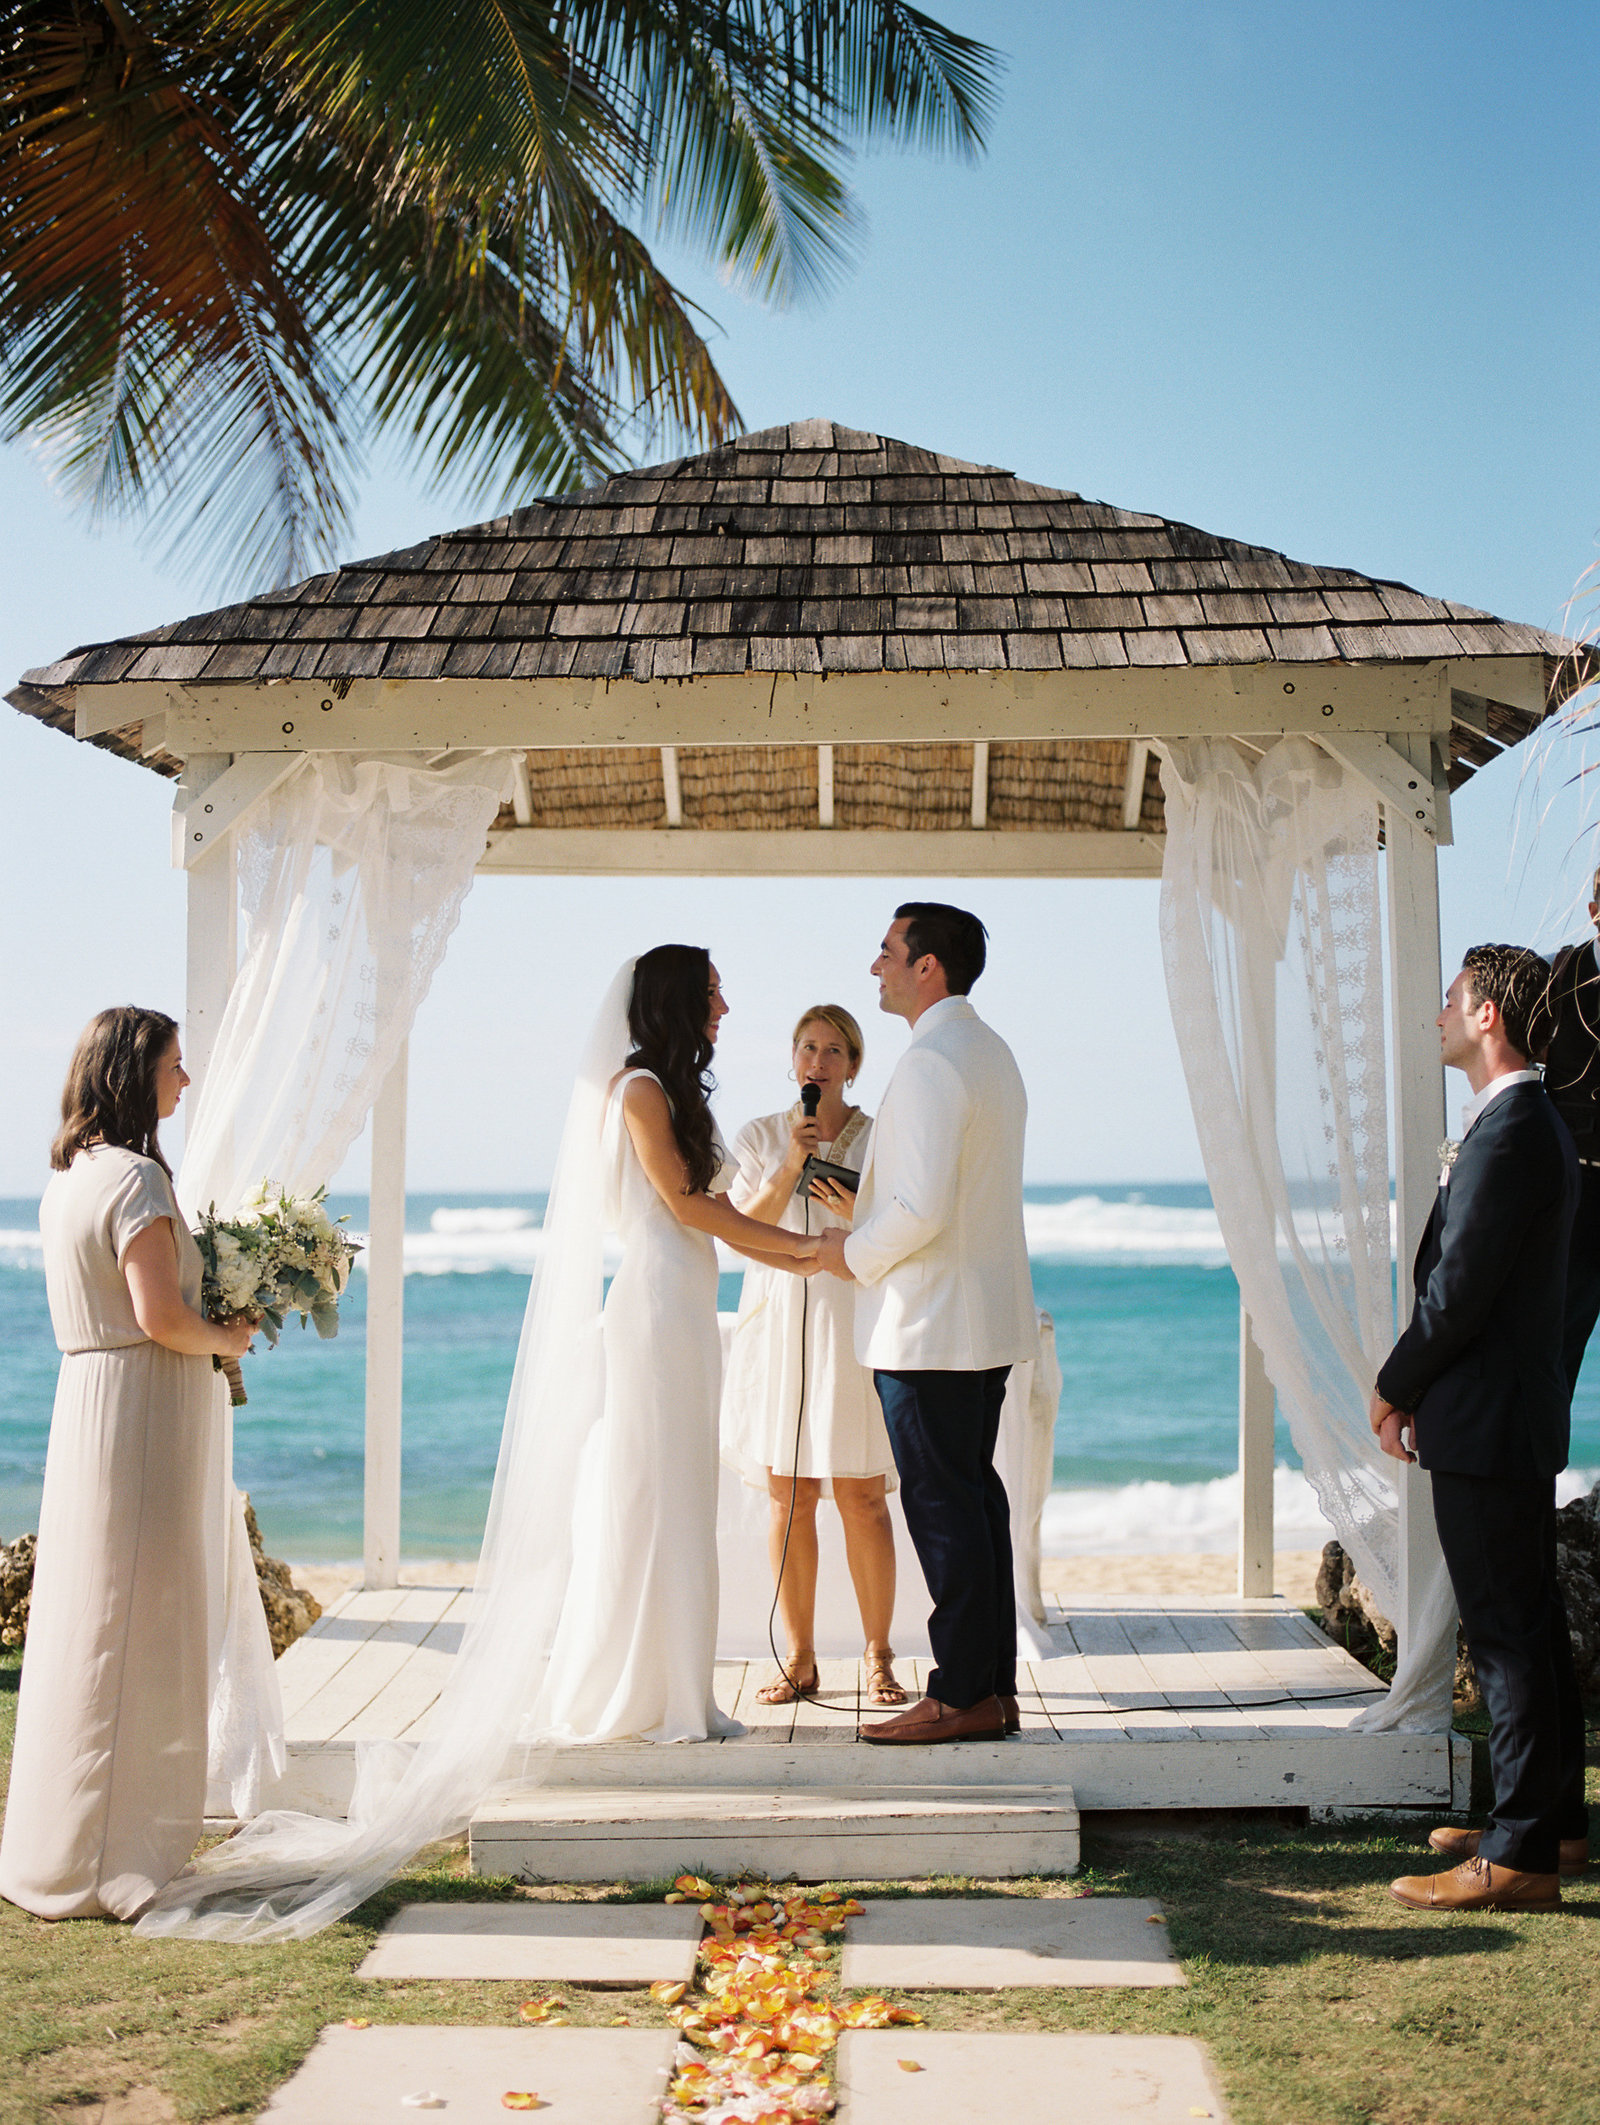 puertoricodestinationwedding - 25